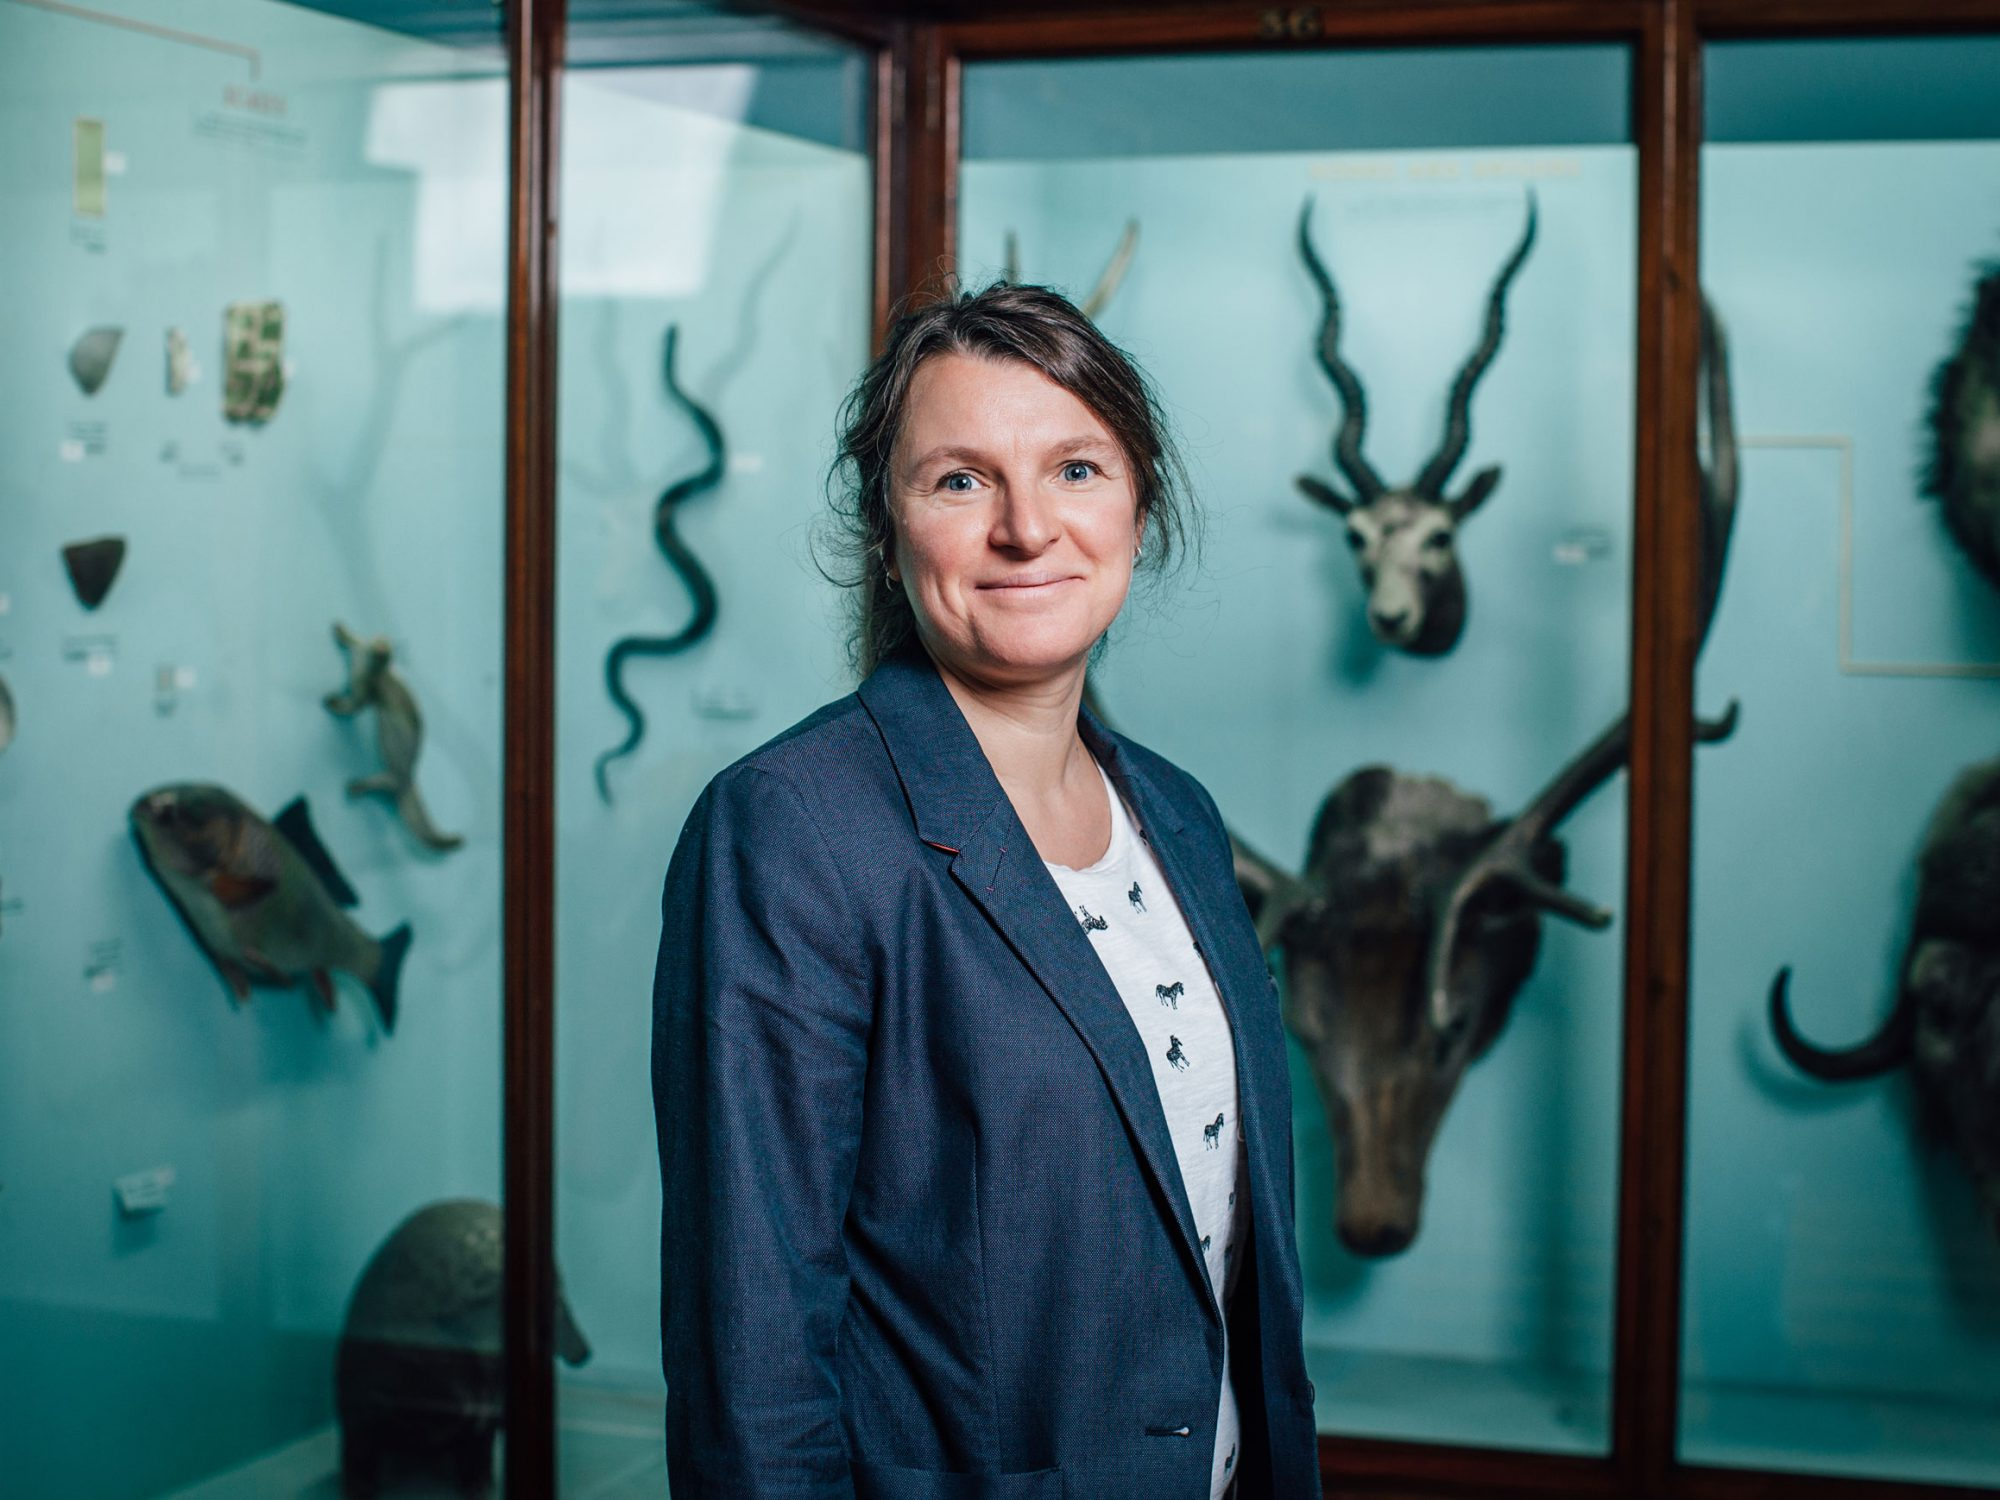 A woman seen from the waist up is wearing a blue jacket and is smiling. She is stood in front of some blue museum cases with taxidermy animals in them like fish, deer and antelope